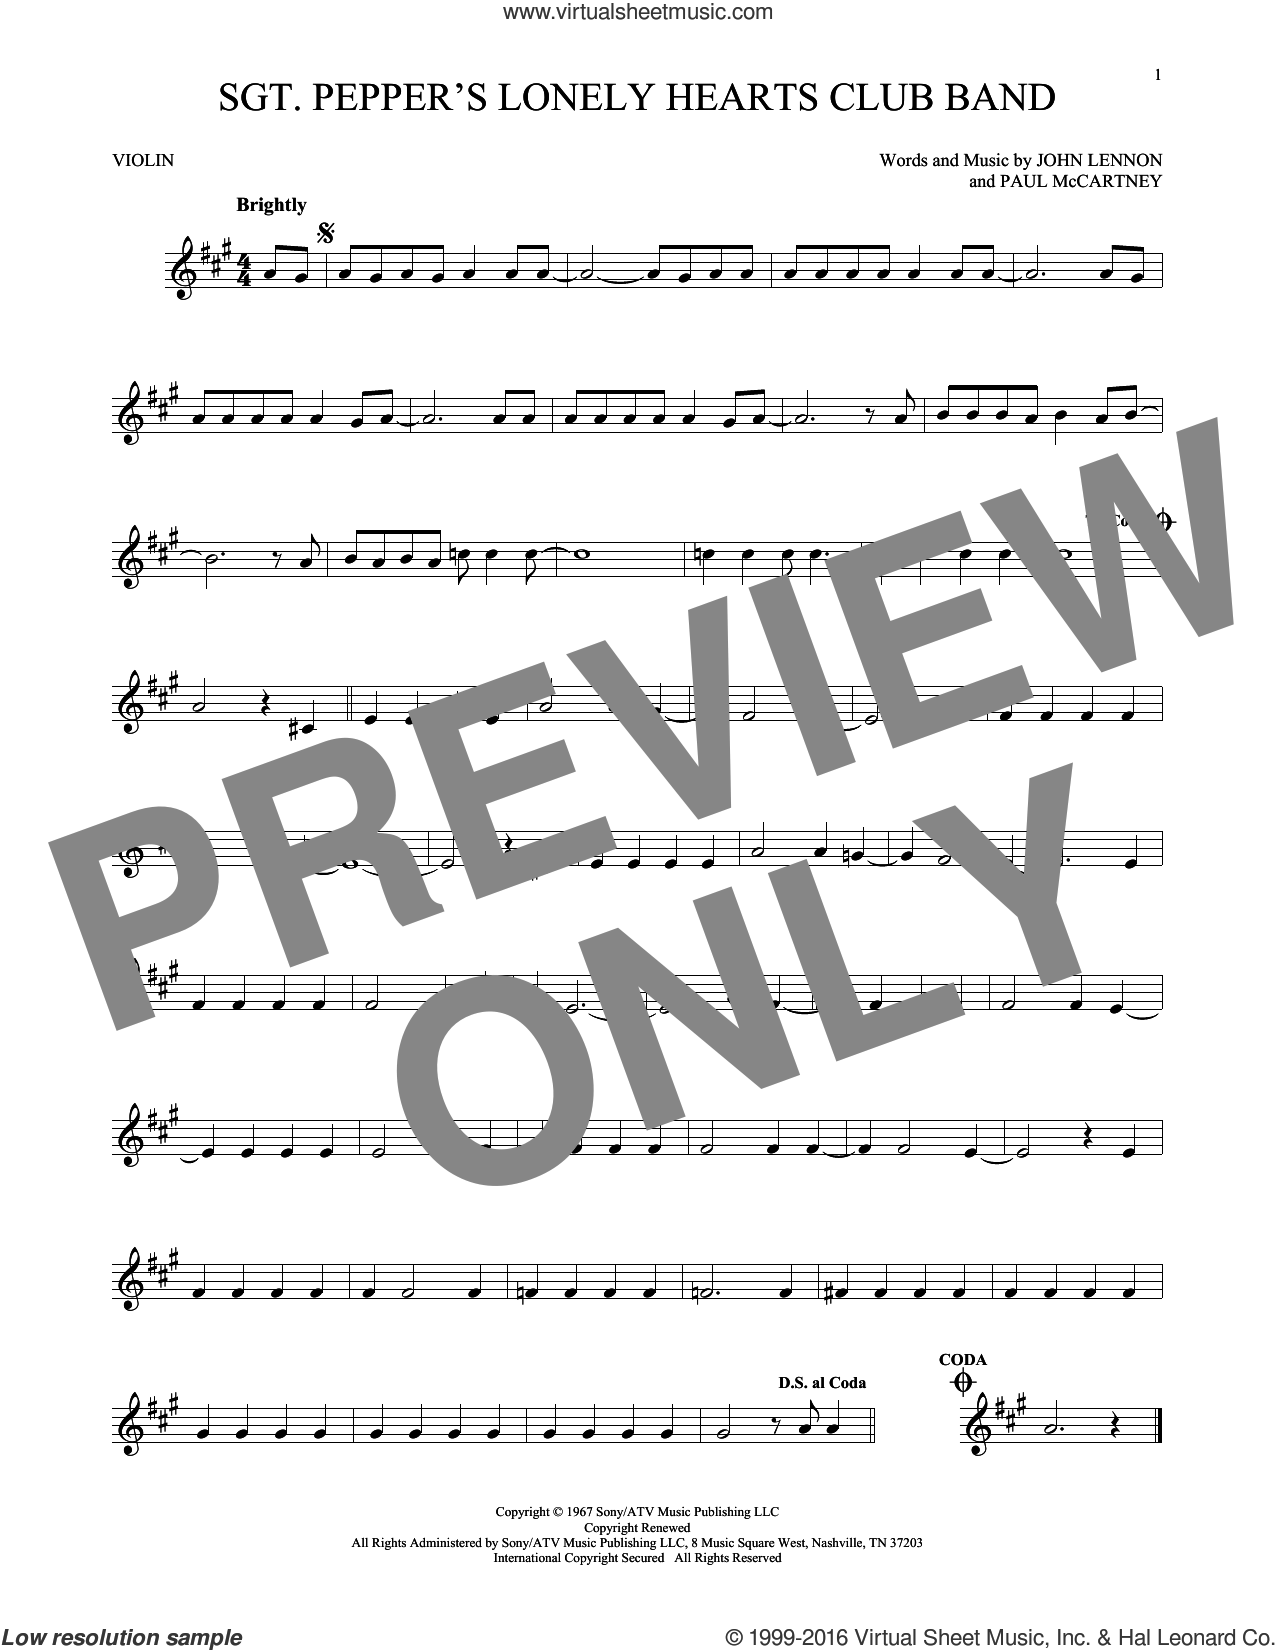 Sgt. Pepper's Lonely Hearts Club Band sheet music for violin solo by The Beatles, John Lennon and Paul McCartney, intermediate skill level